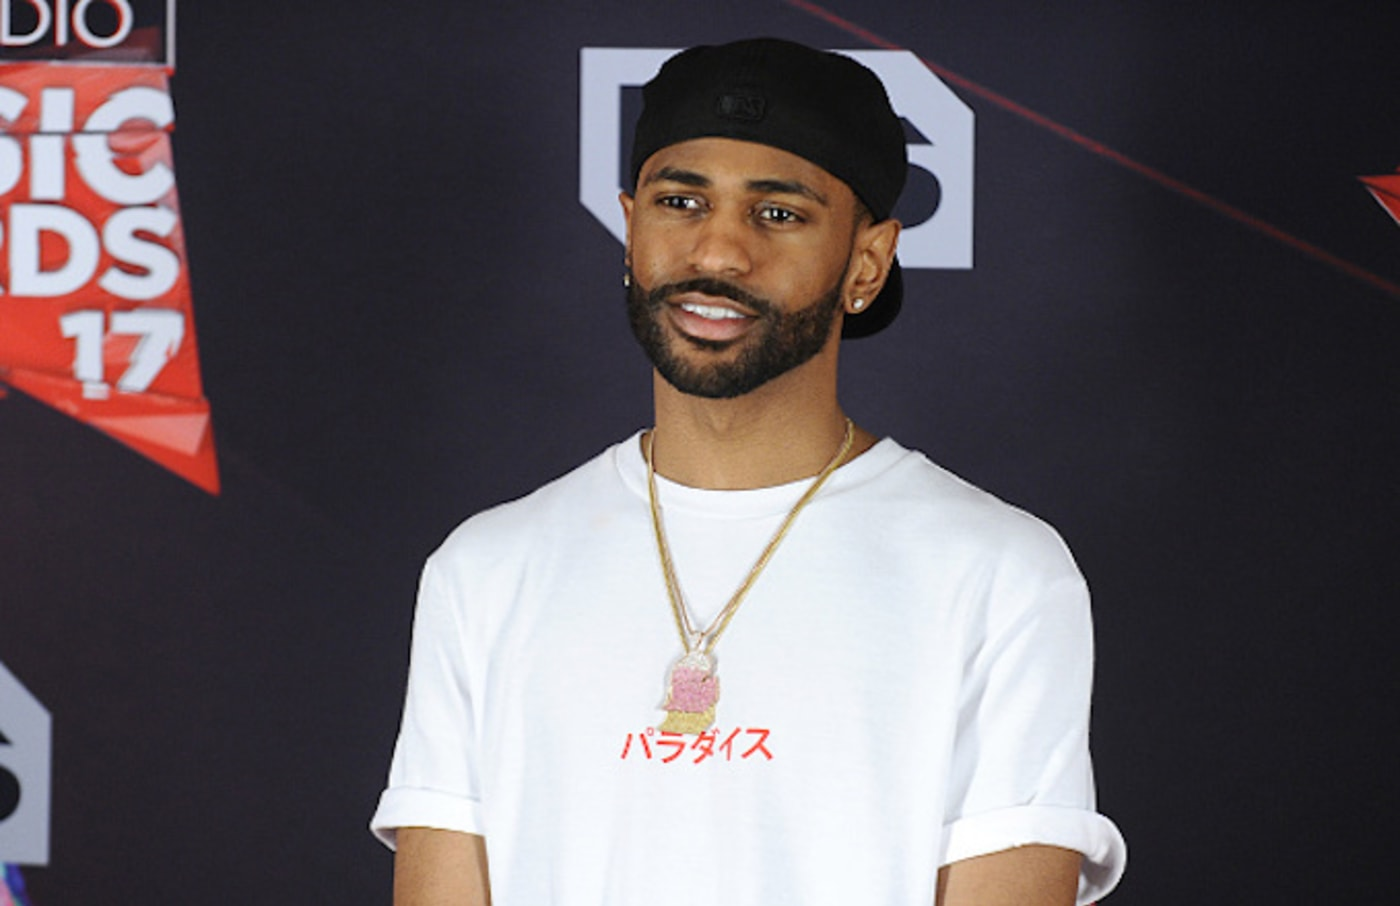 Rapper Big Sean poses in the press room at the 2017 iHeartRadio Music Awards